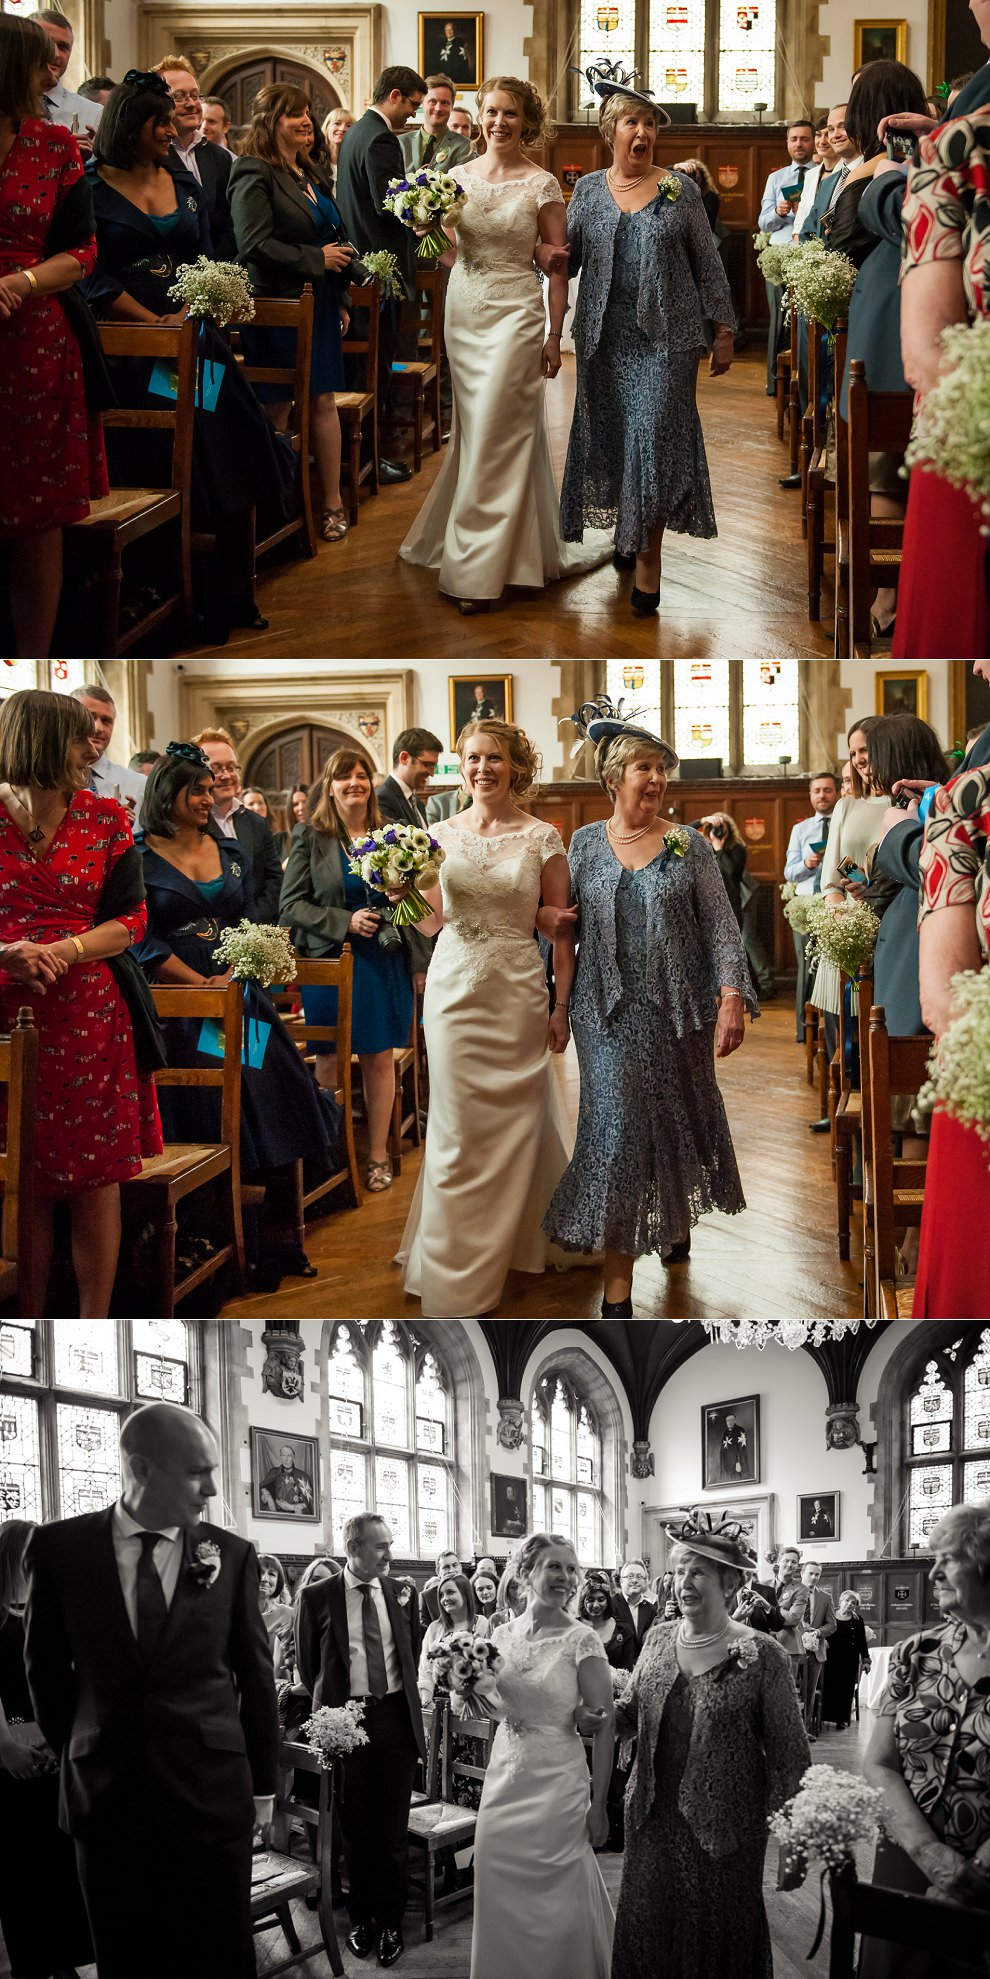 Clerkenwell-Wedding-London-Mandy-James-22